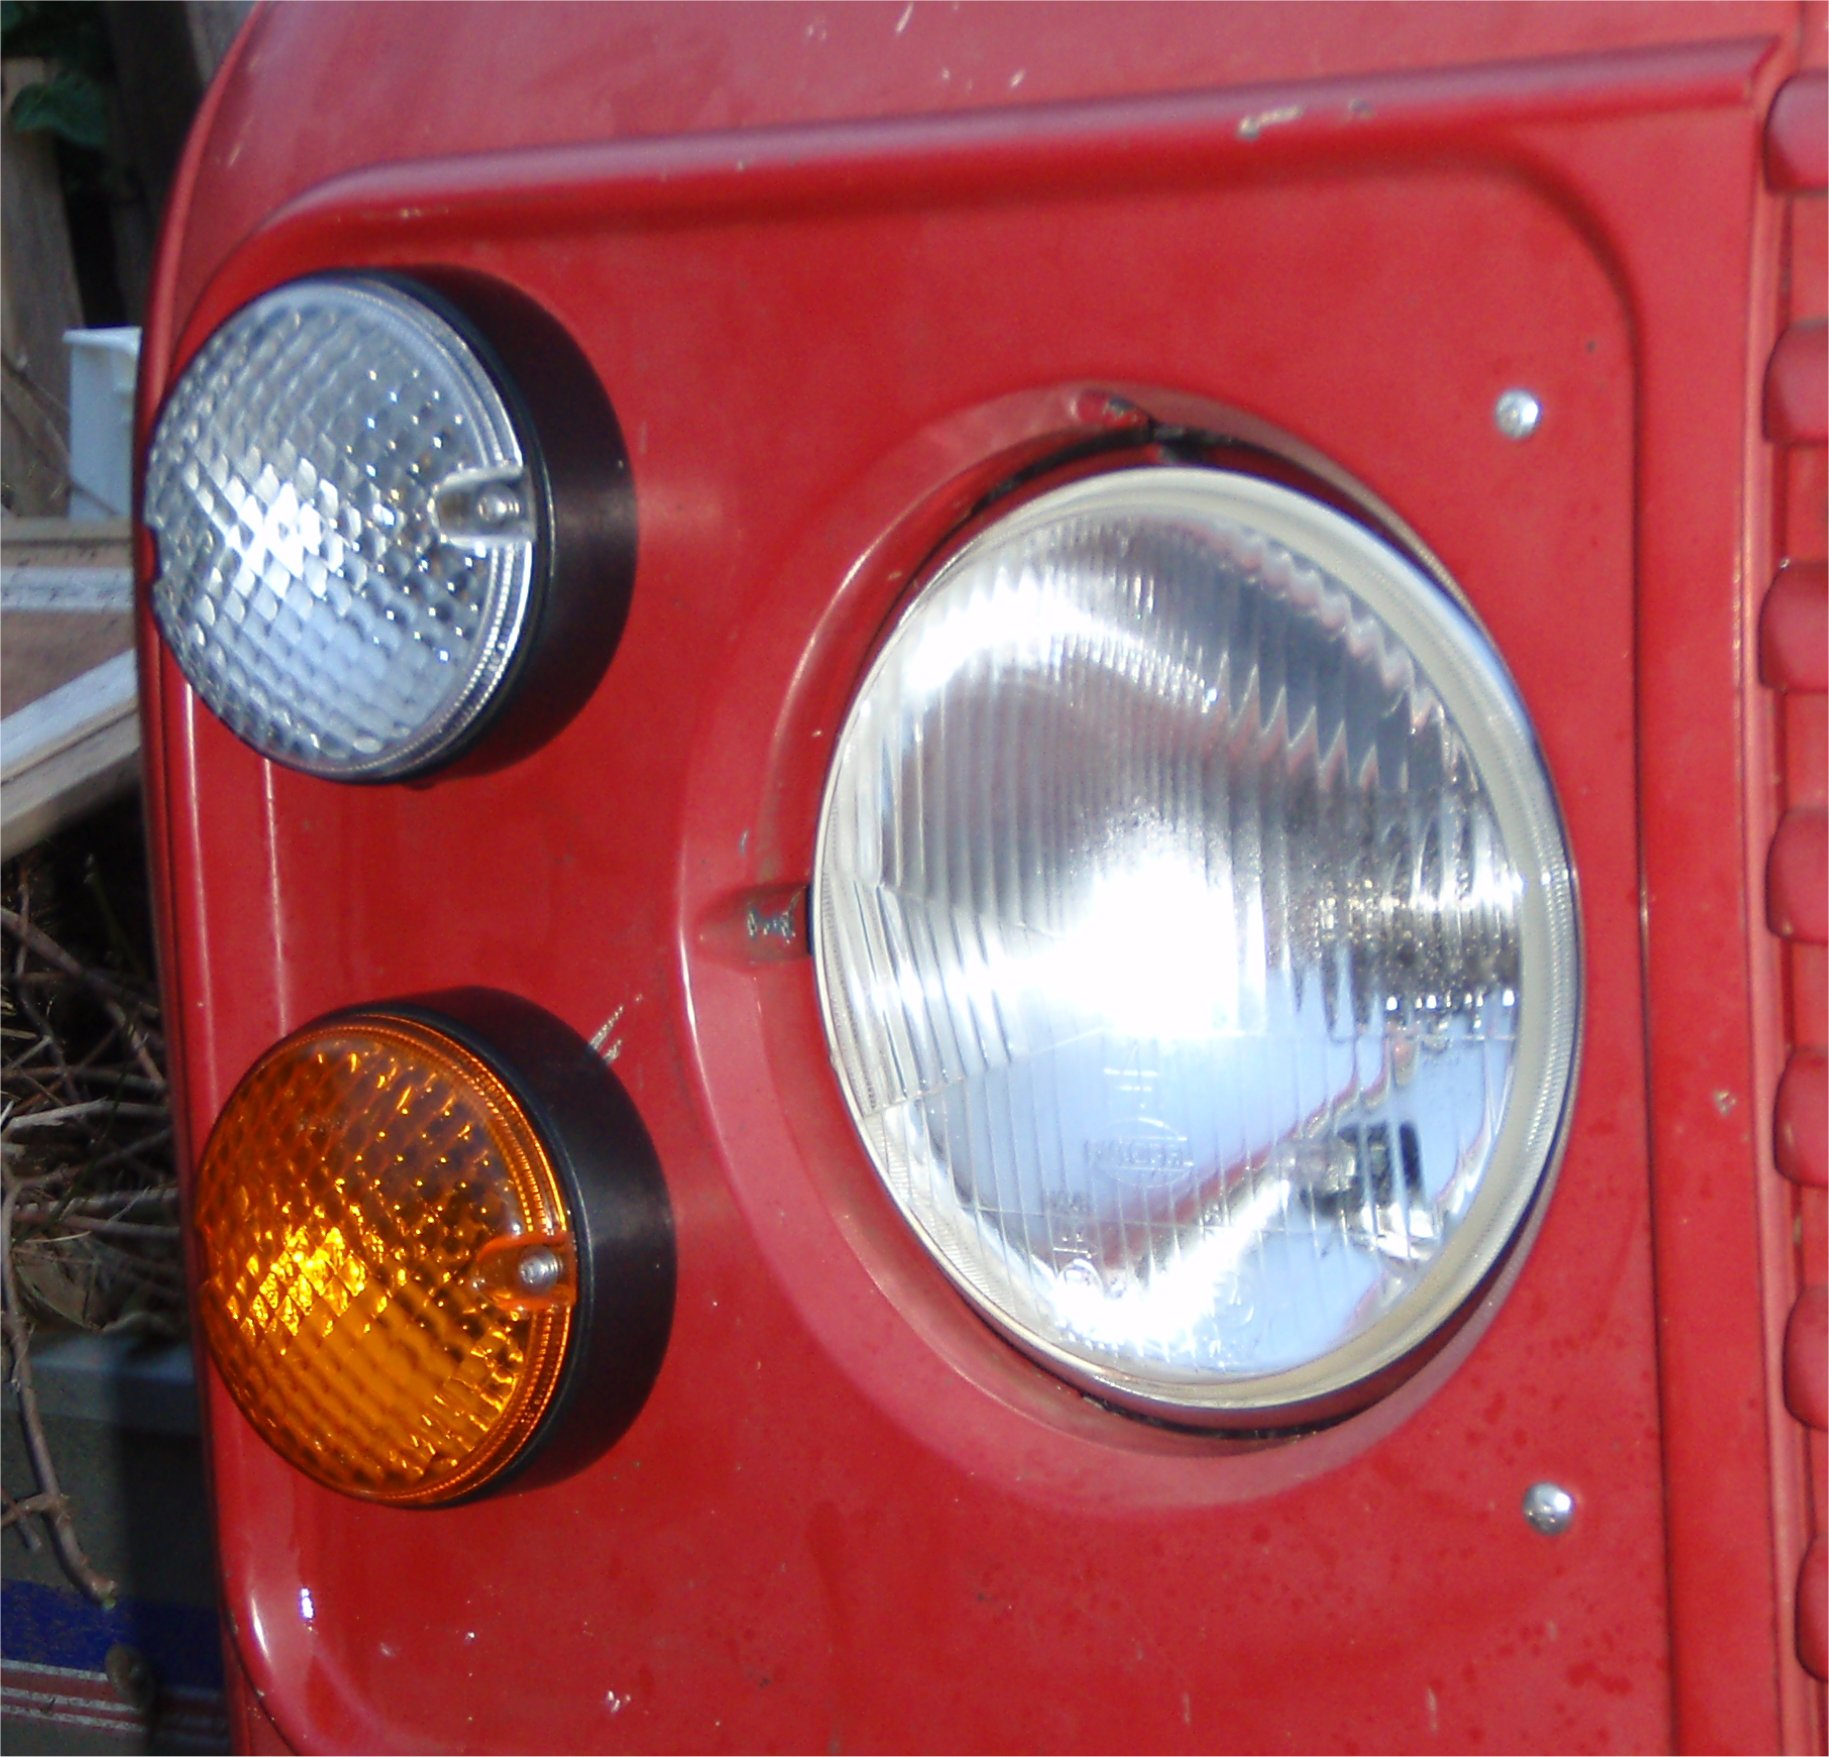 Picture of Upgrading the Exterior Lights on a Landrover Defender to NAS. (Part 2 of 3)